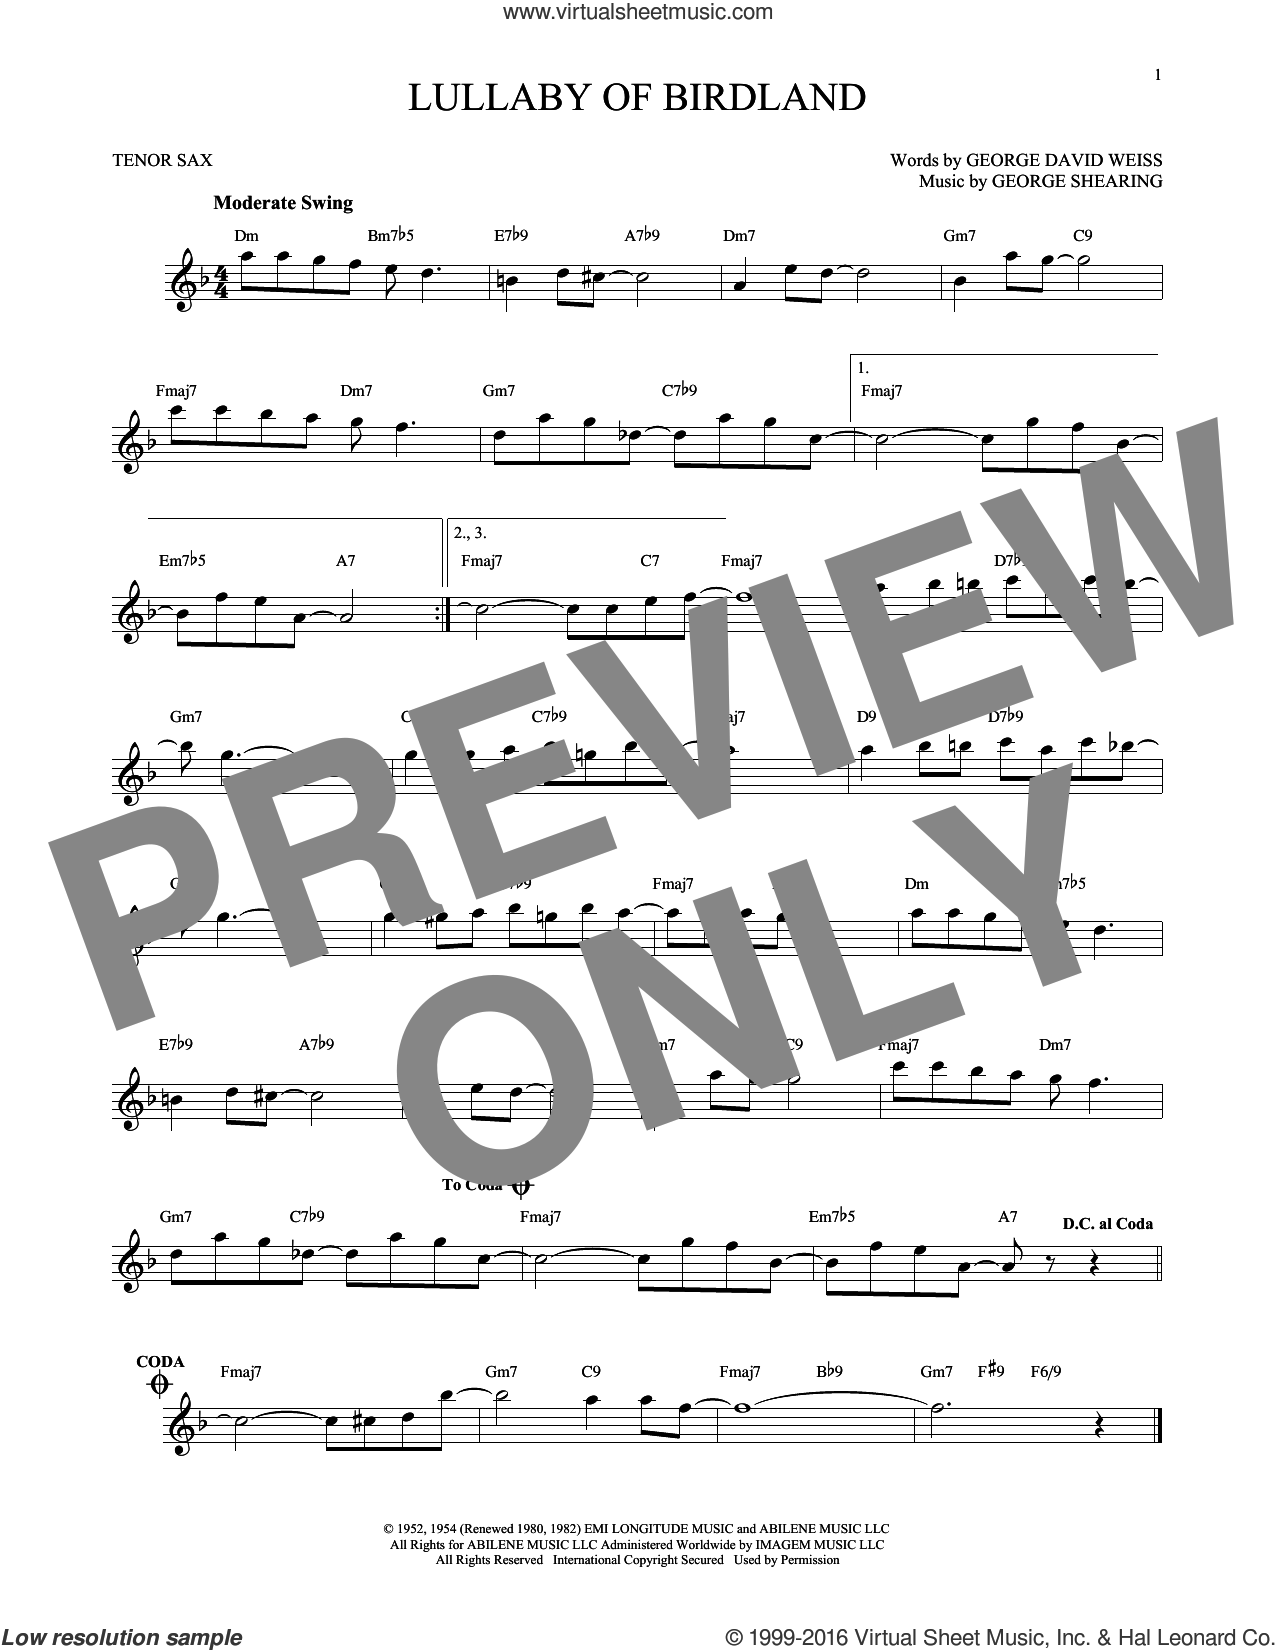 Lullaby Of Birdland sheet music for tenor saxophone solo by George David Weiss and George Shearing, intermediate skill level